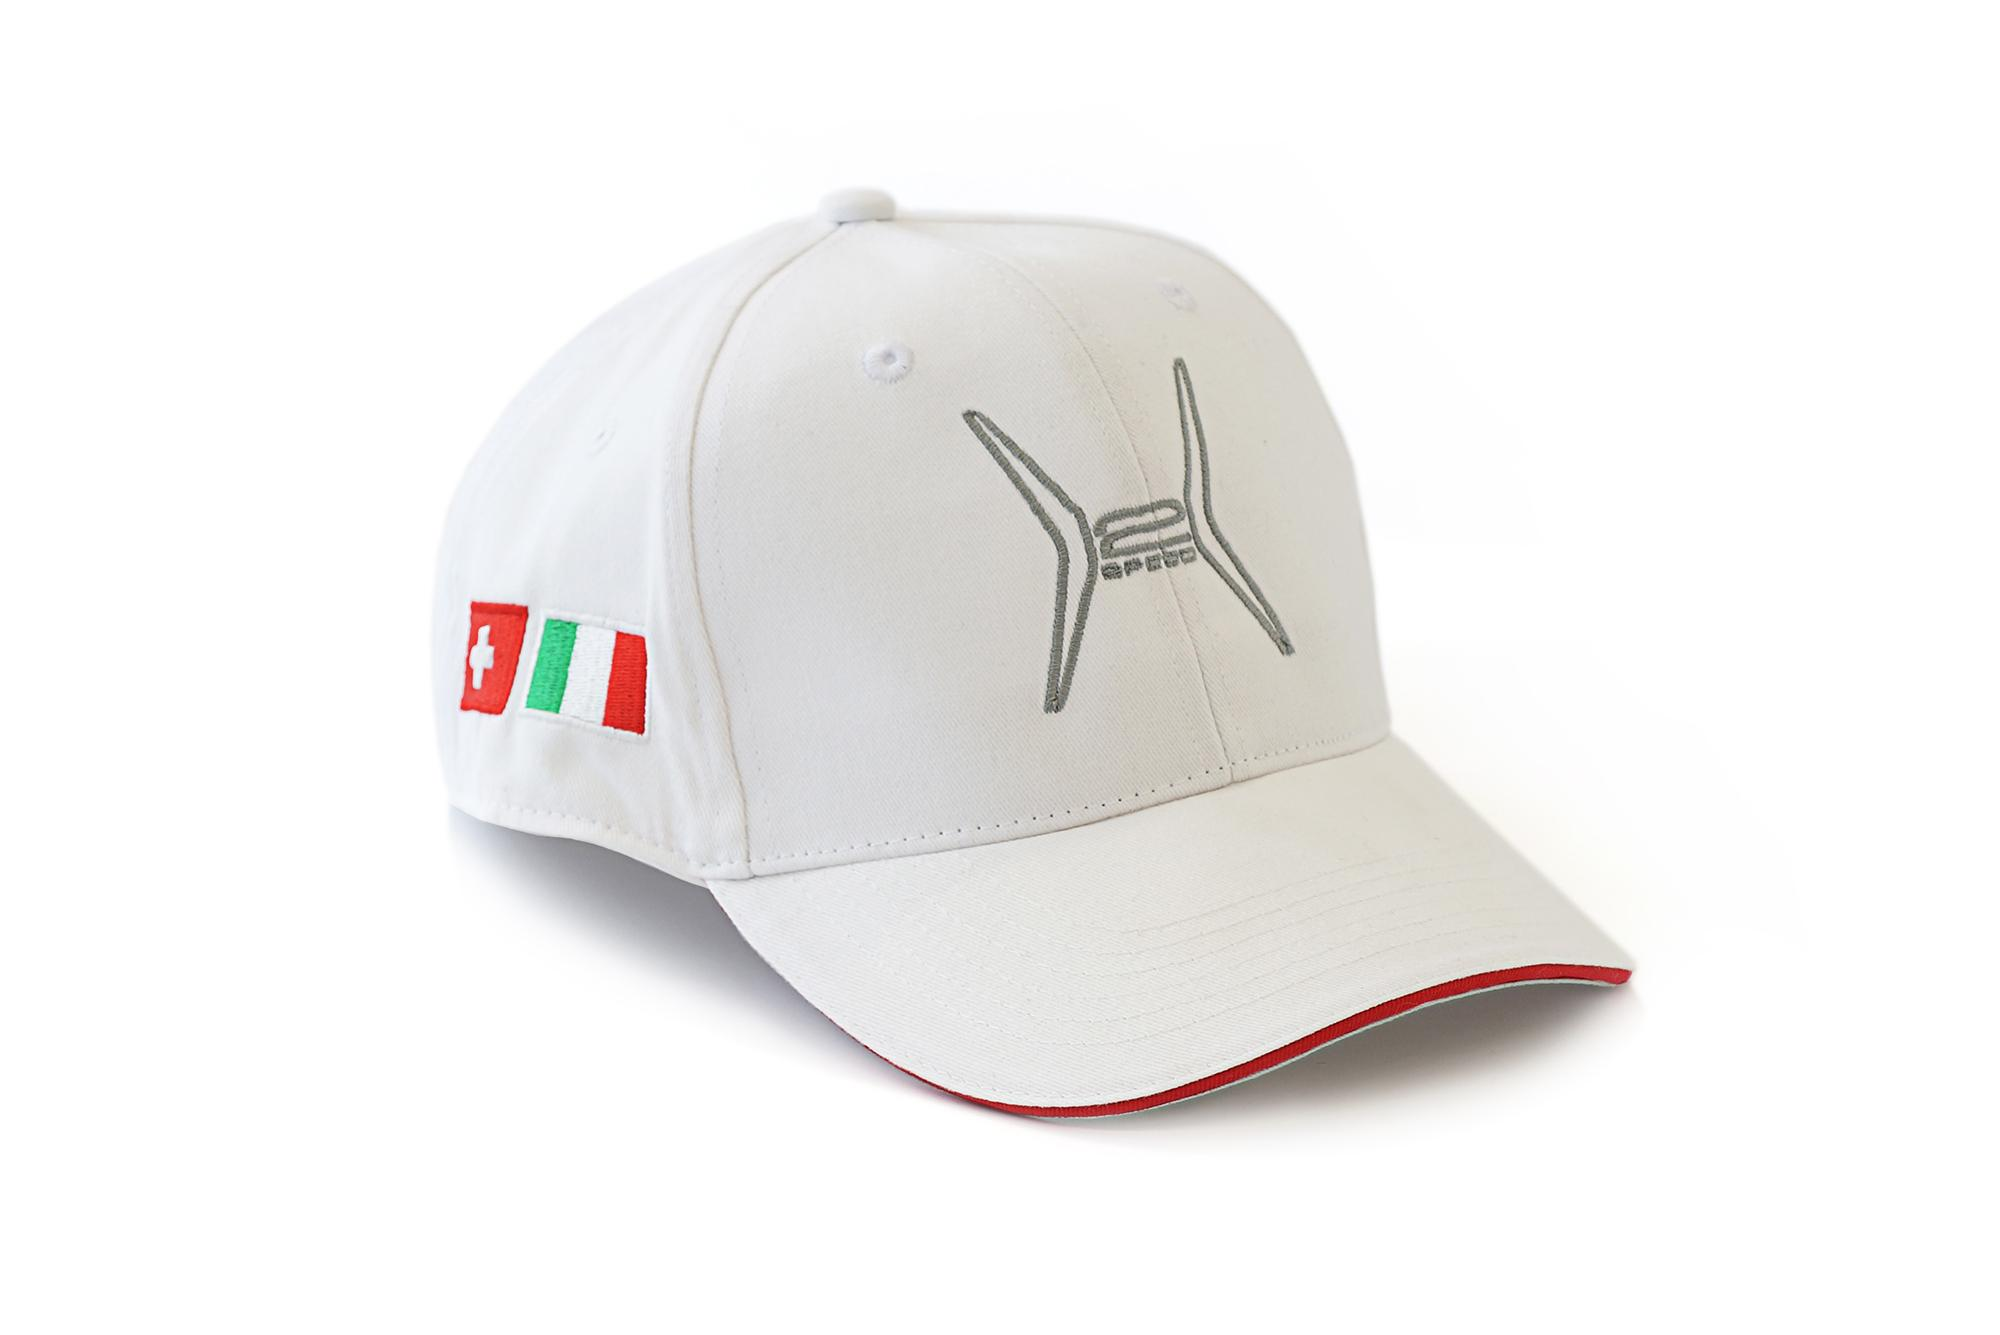 H2 Speed Cap White